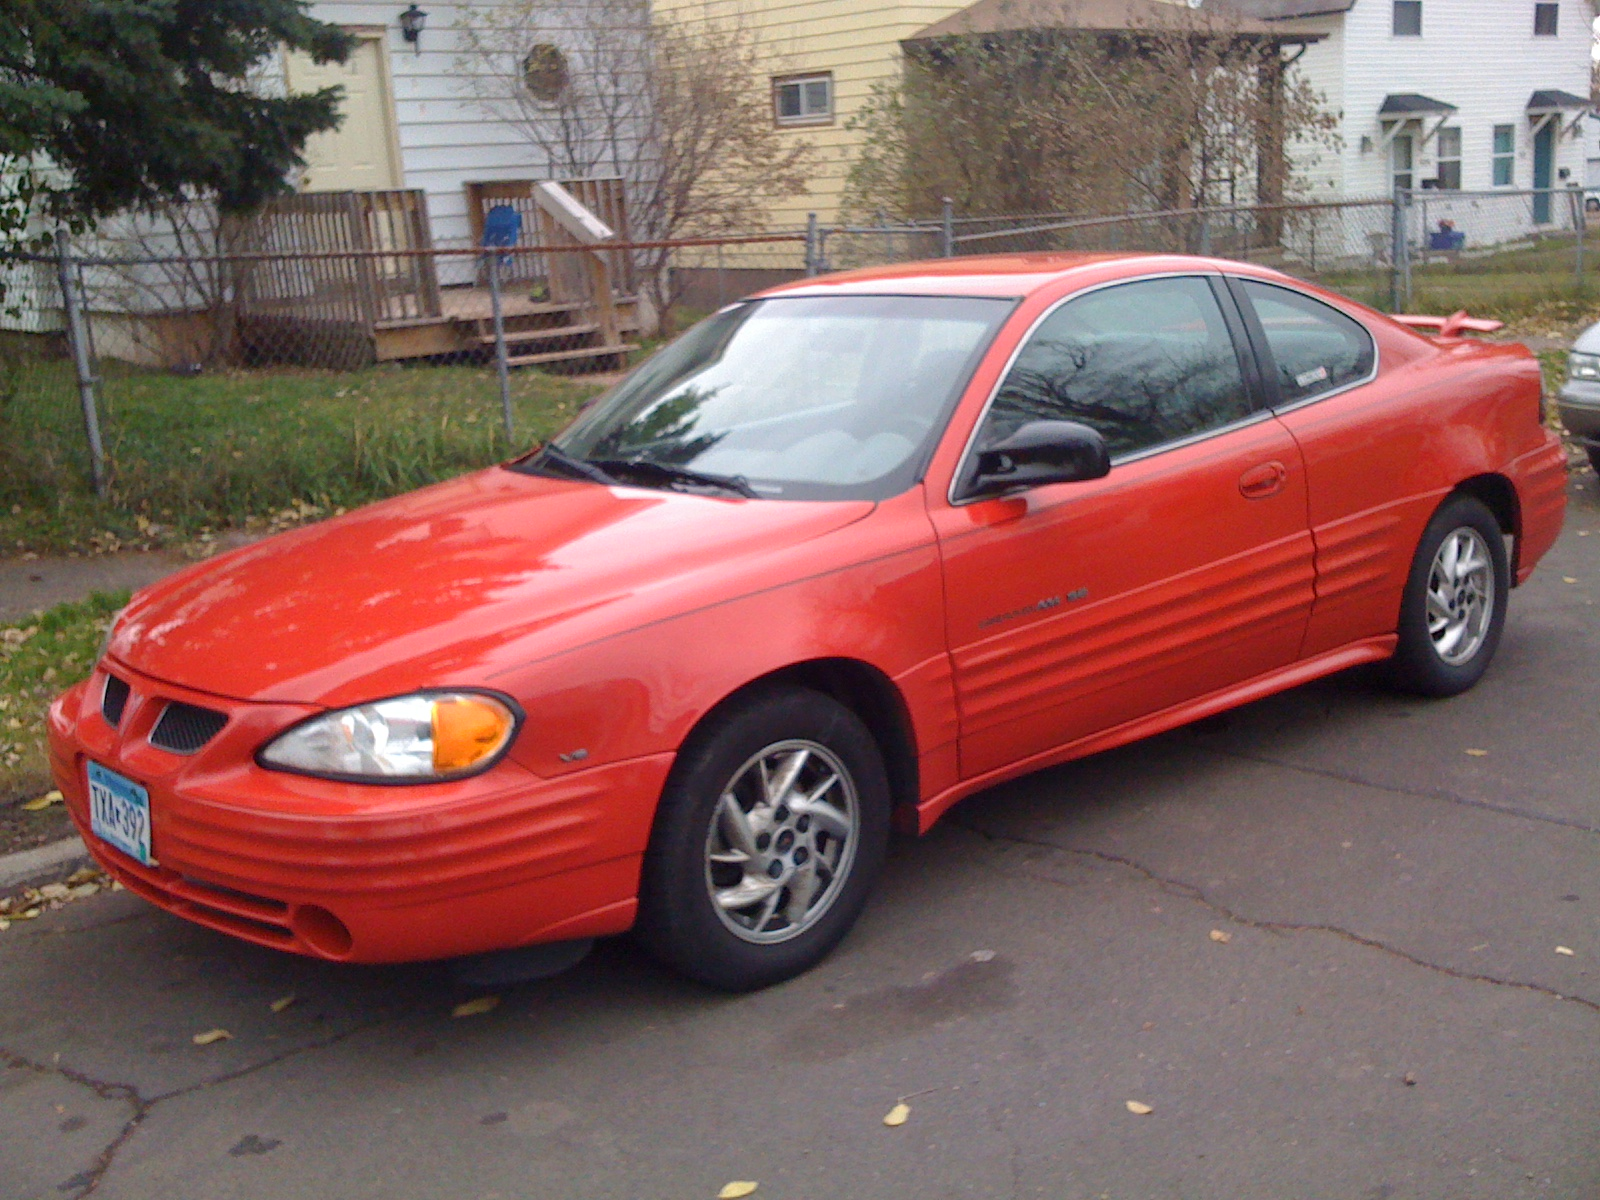 2001 Pontiac Grand Am SE Coupe picture